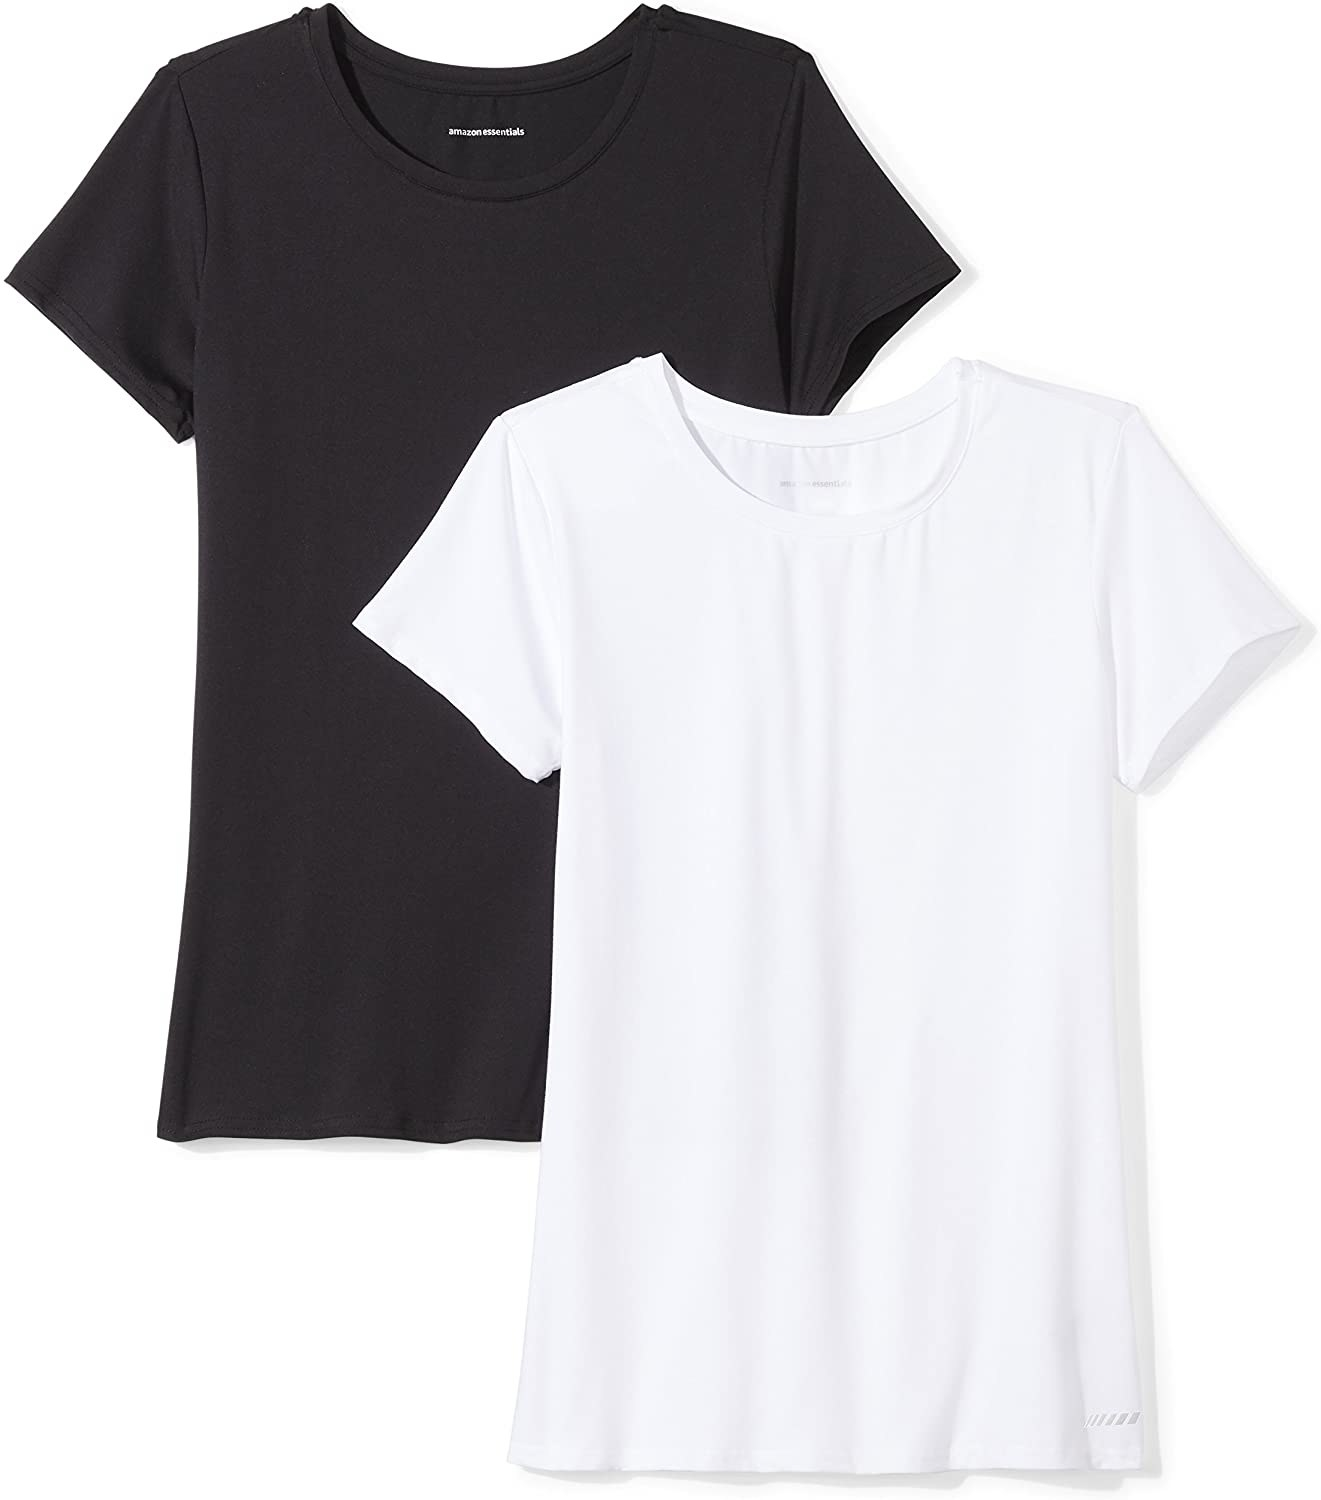 one shirt in black and the other in white